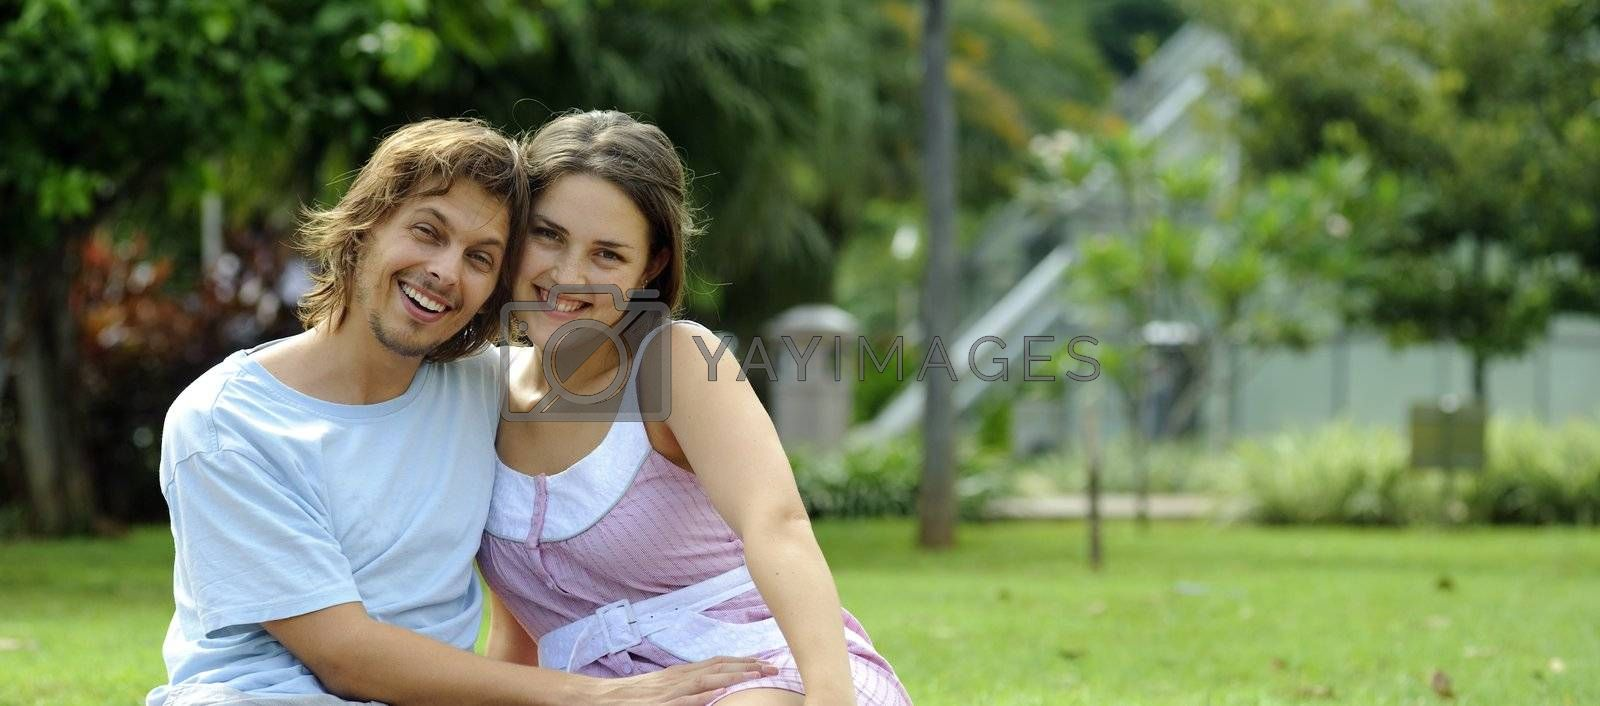 Couple are very happy together in the park